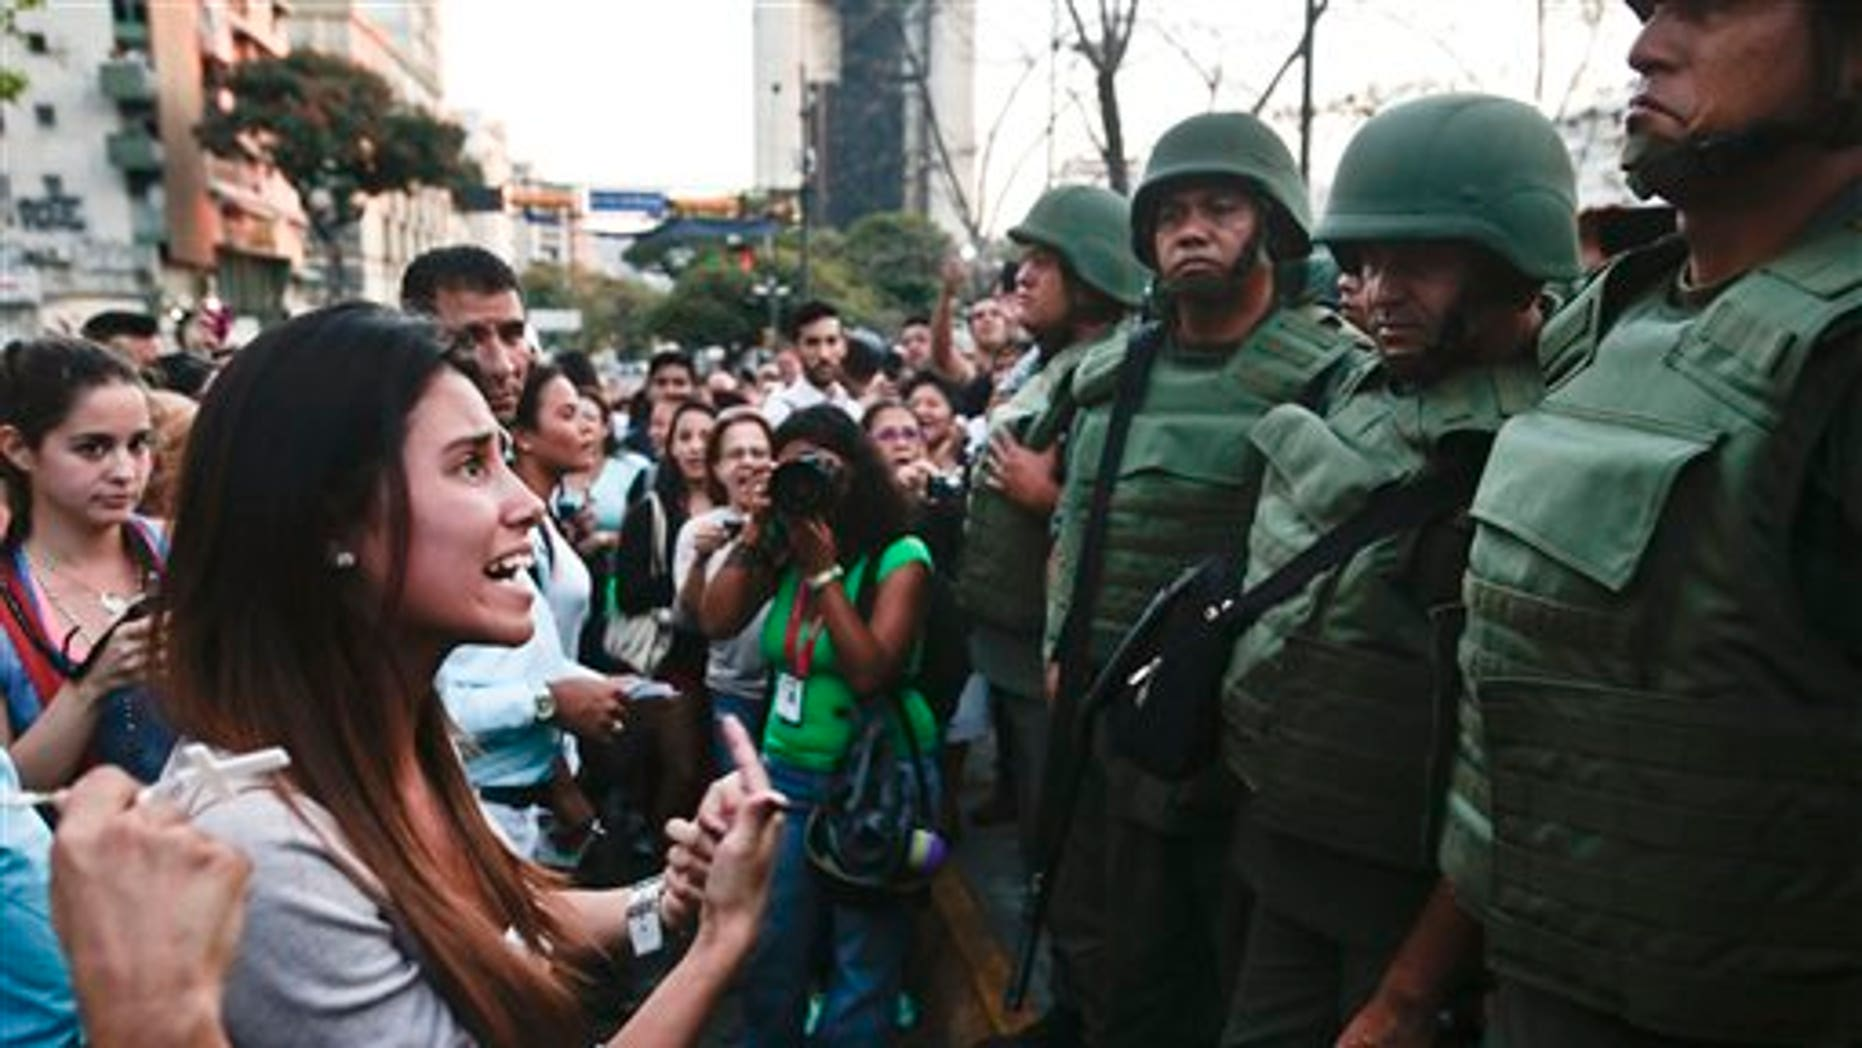 An anti-government protester argues with Bolivarian National Guards in Plaza Altamira in Caracas, Venezuela, Monday, March 17, 2014. Security forces on Monday took control of a Caracas plaza that has been at the heart of anti-government protests that have shaken Venezuela for a month. (AP Photo/Esteban Felix)